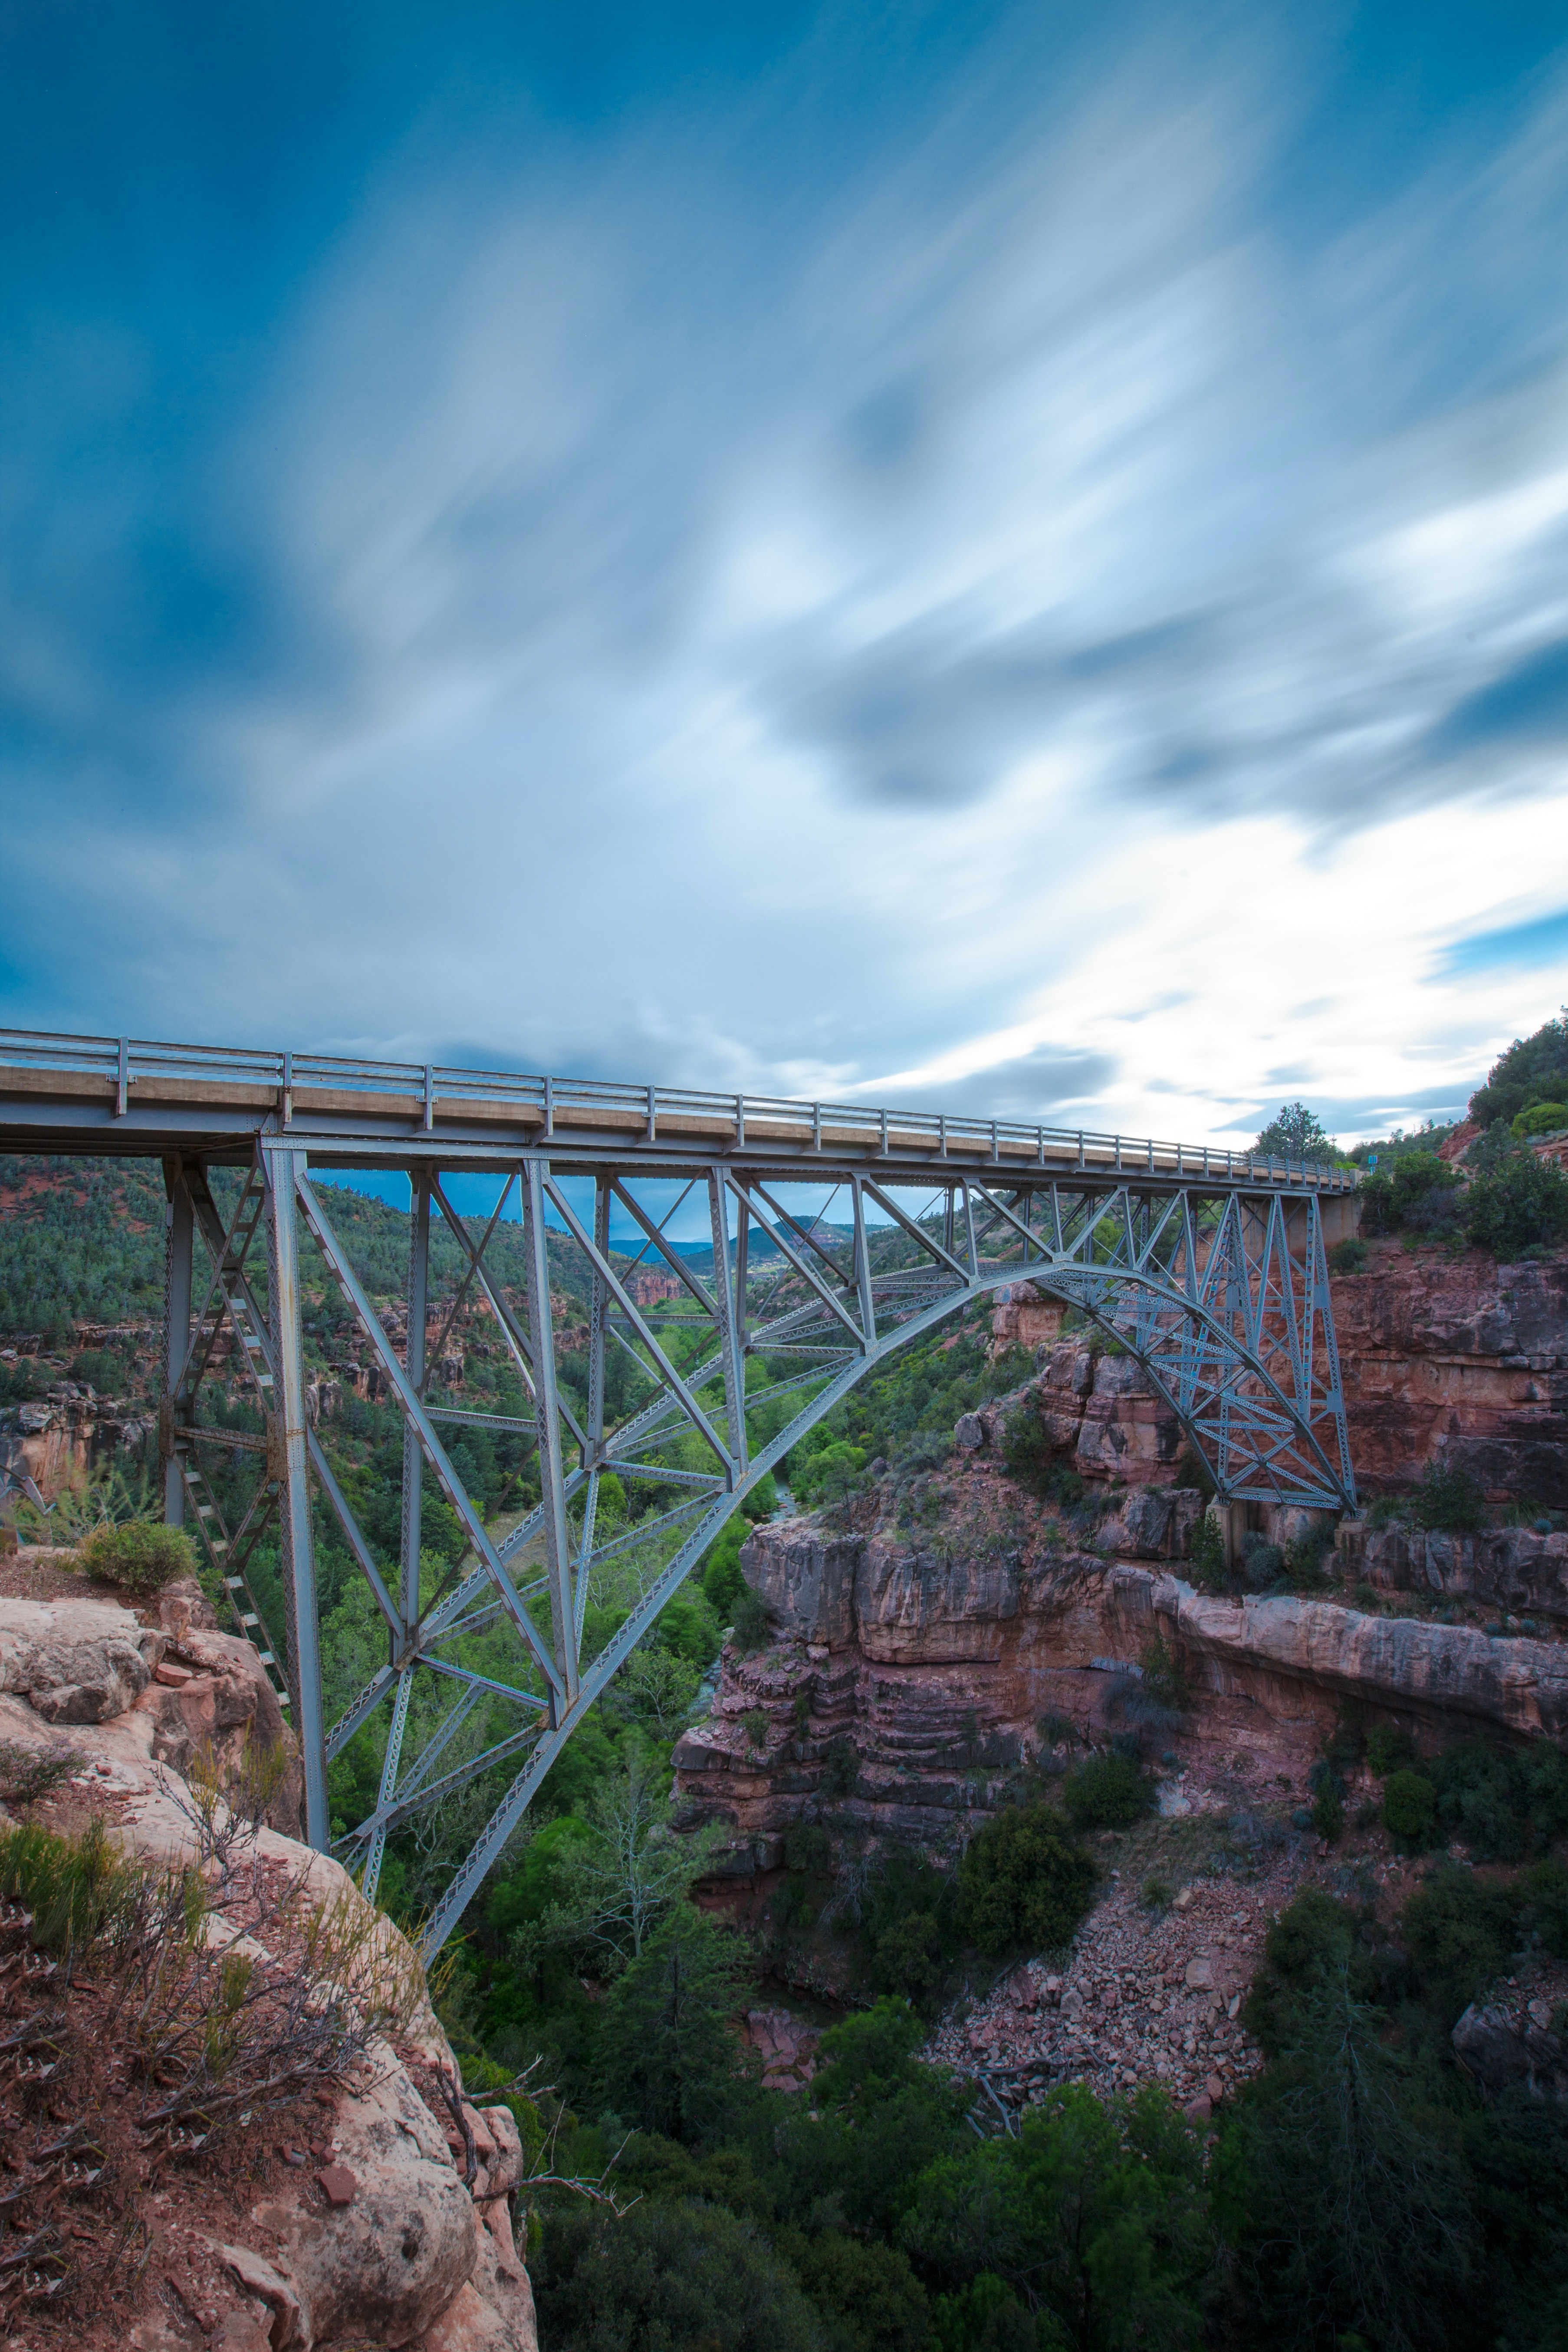 gray bridge between brown rocky mountains under cloudy sky during daytime